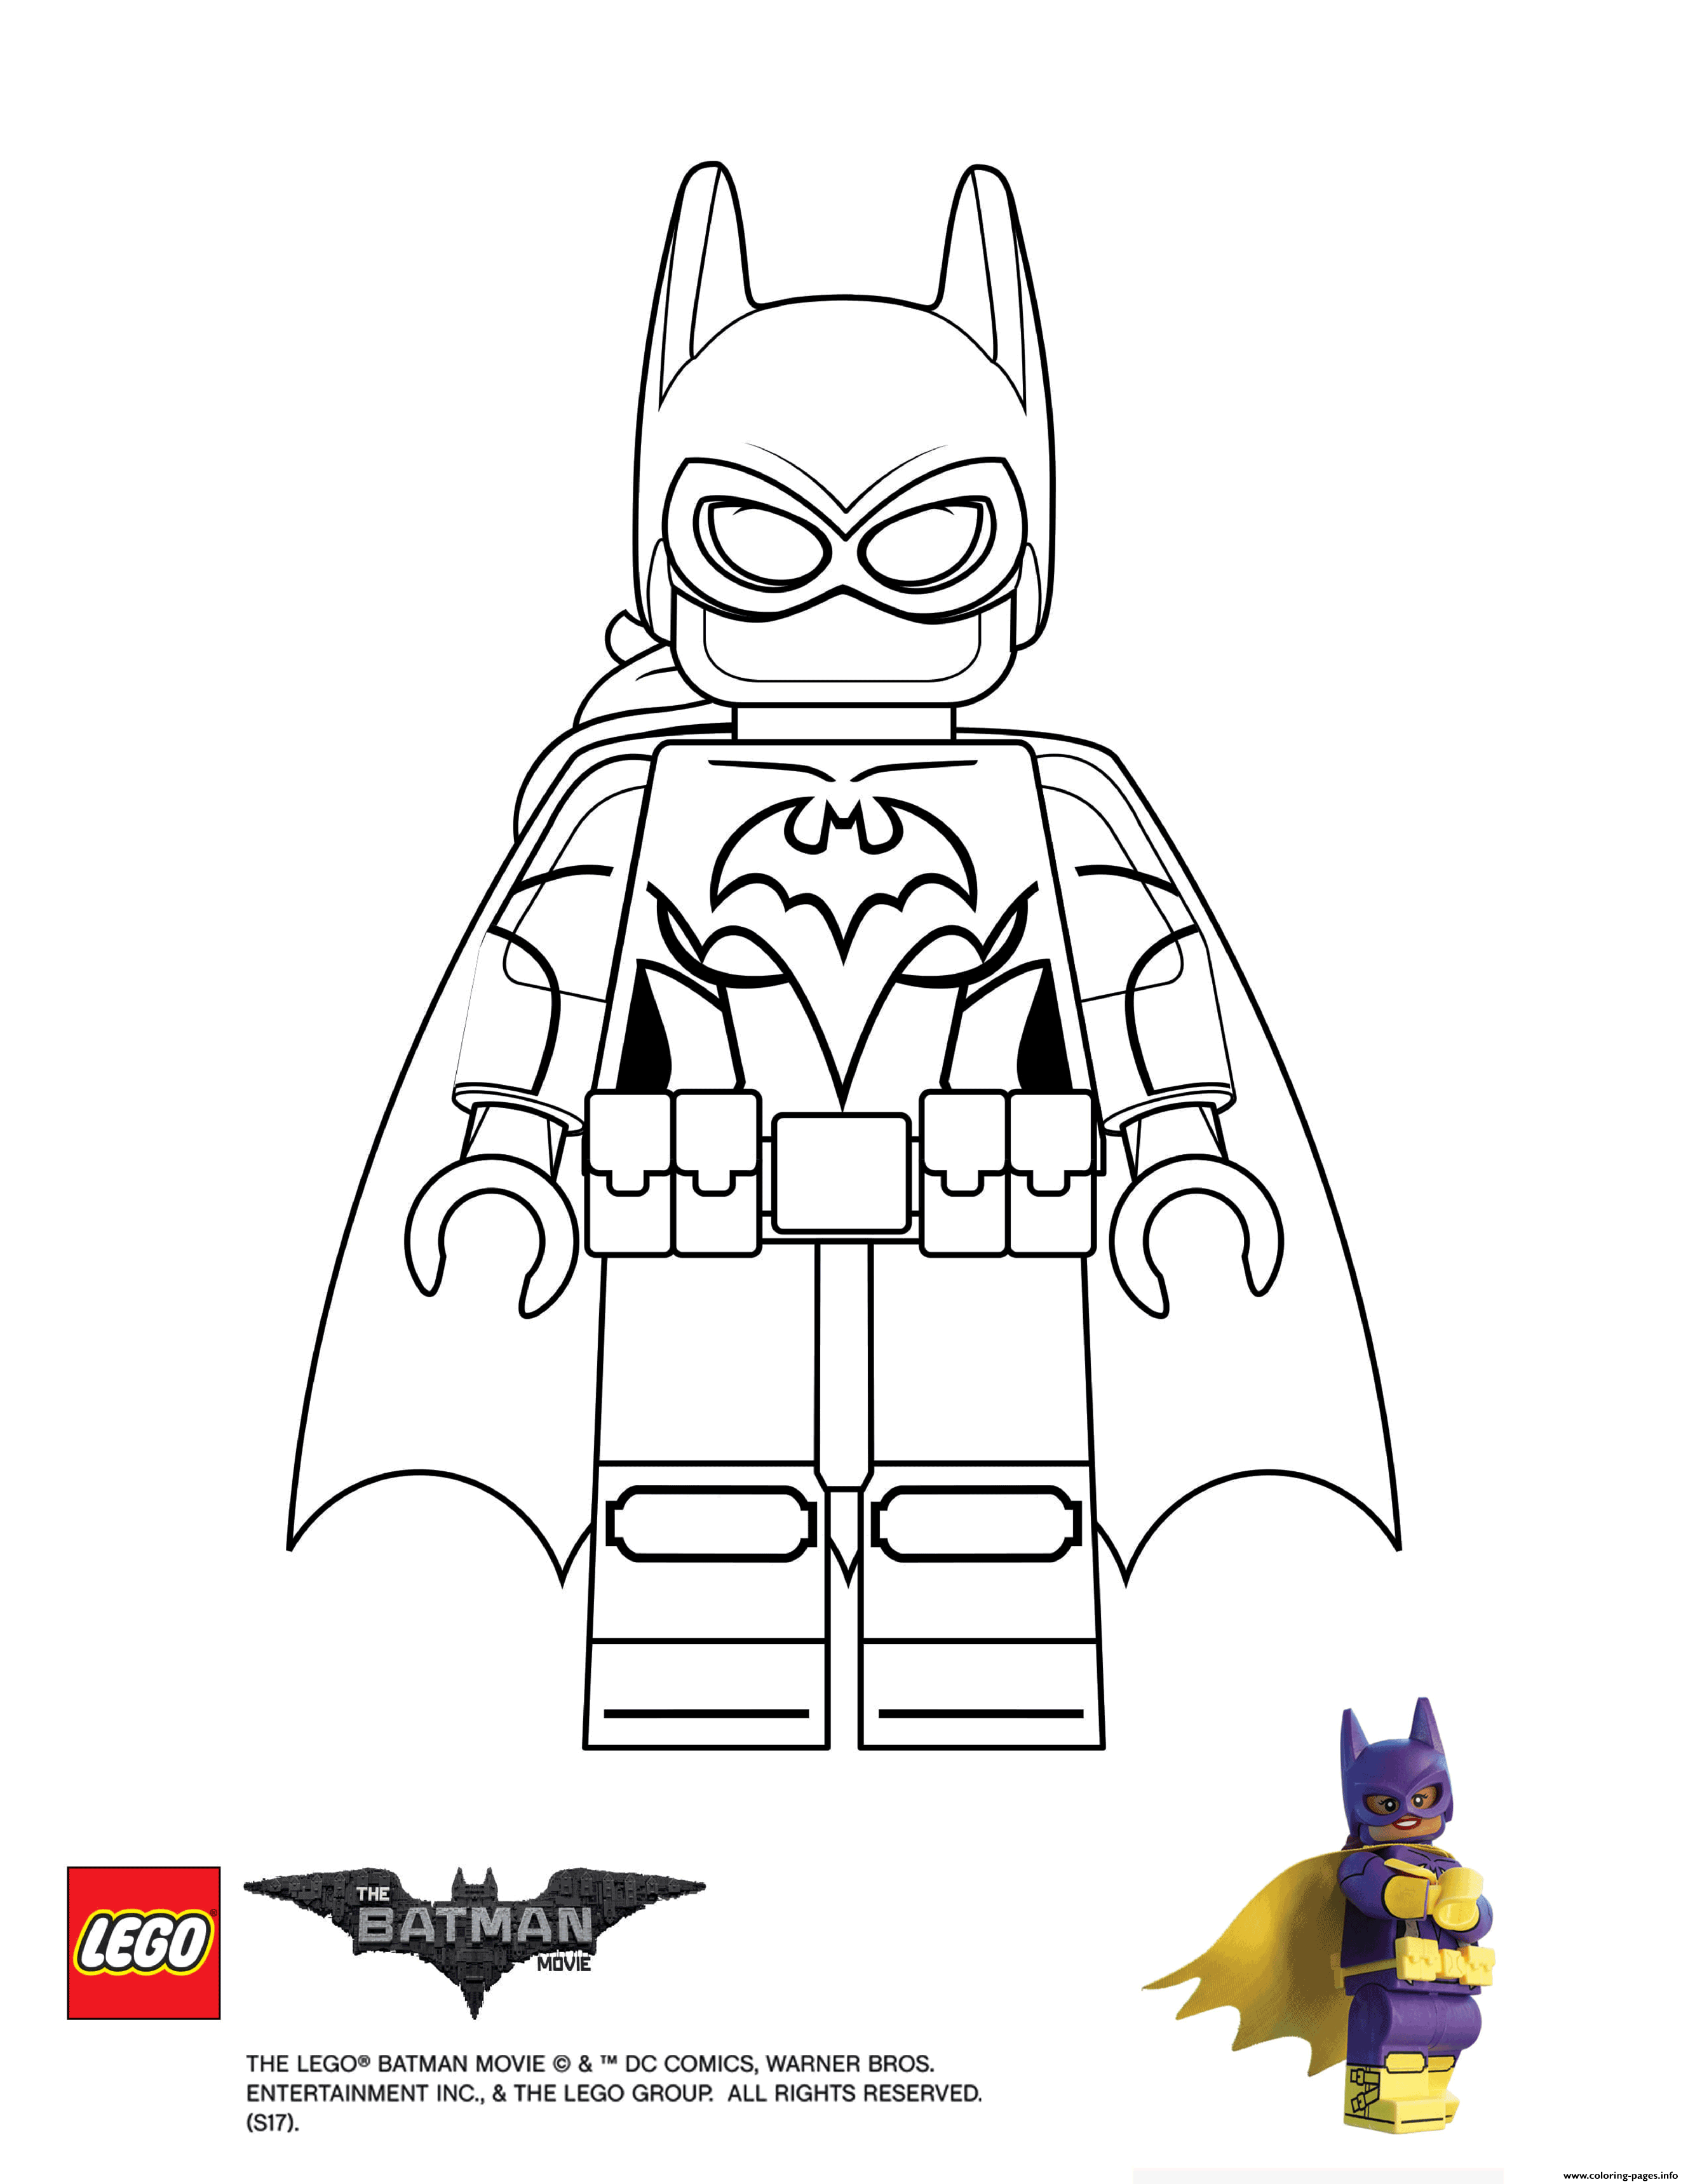 Batgirl Lego Batman Movie Coloring Pages